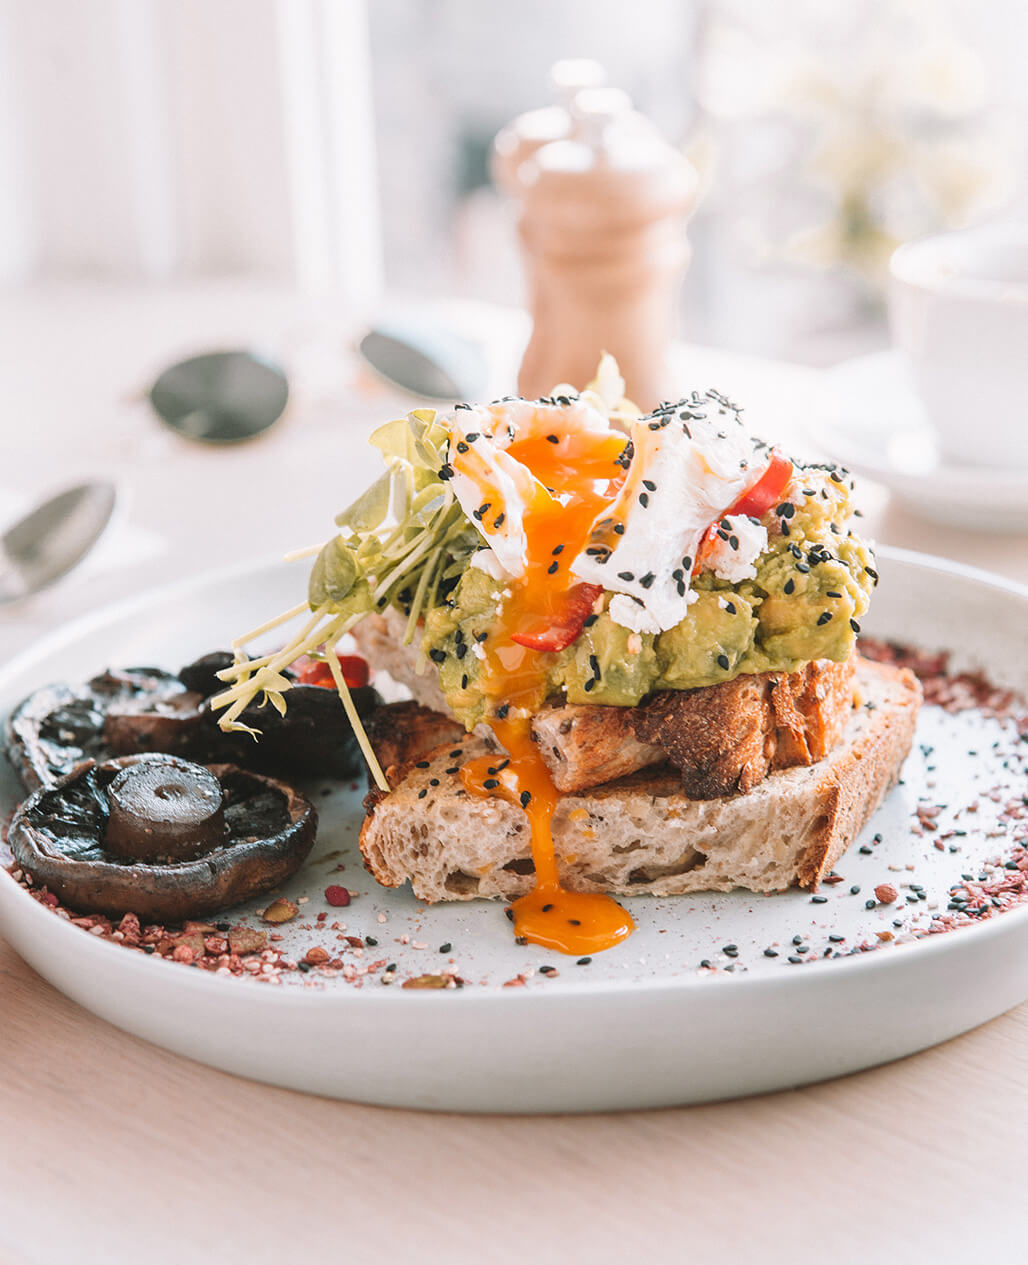 epicavocado_food-fotografie_3